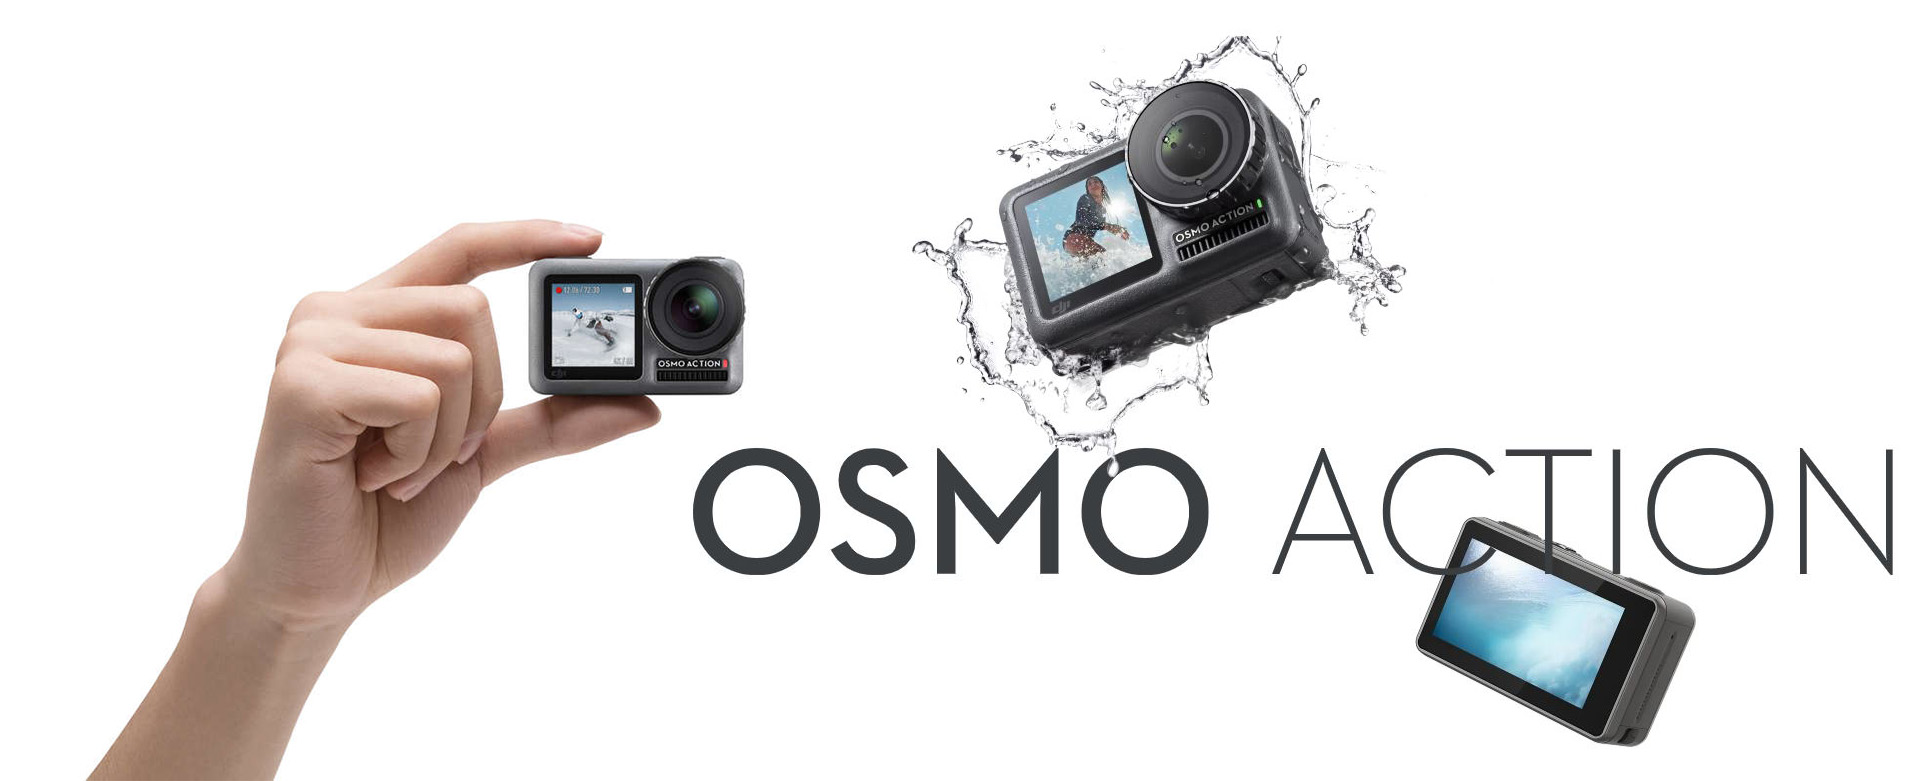 DJI Osmo Action In Stock